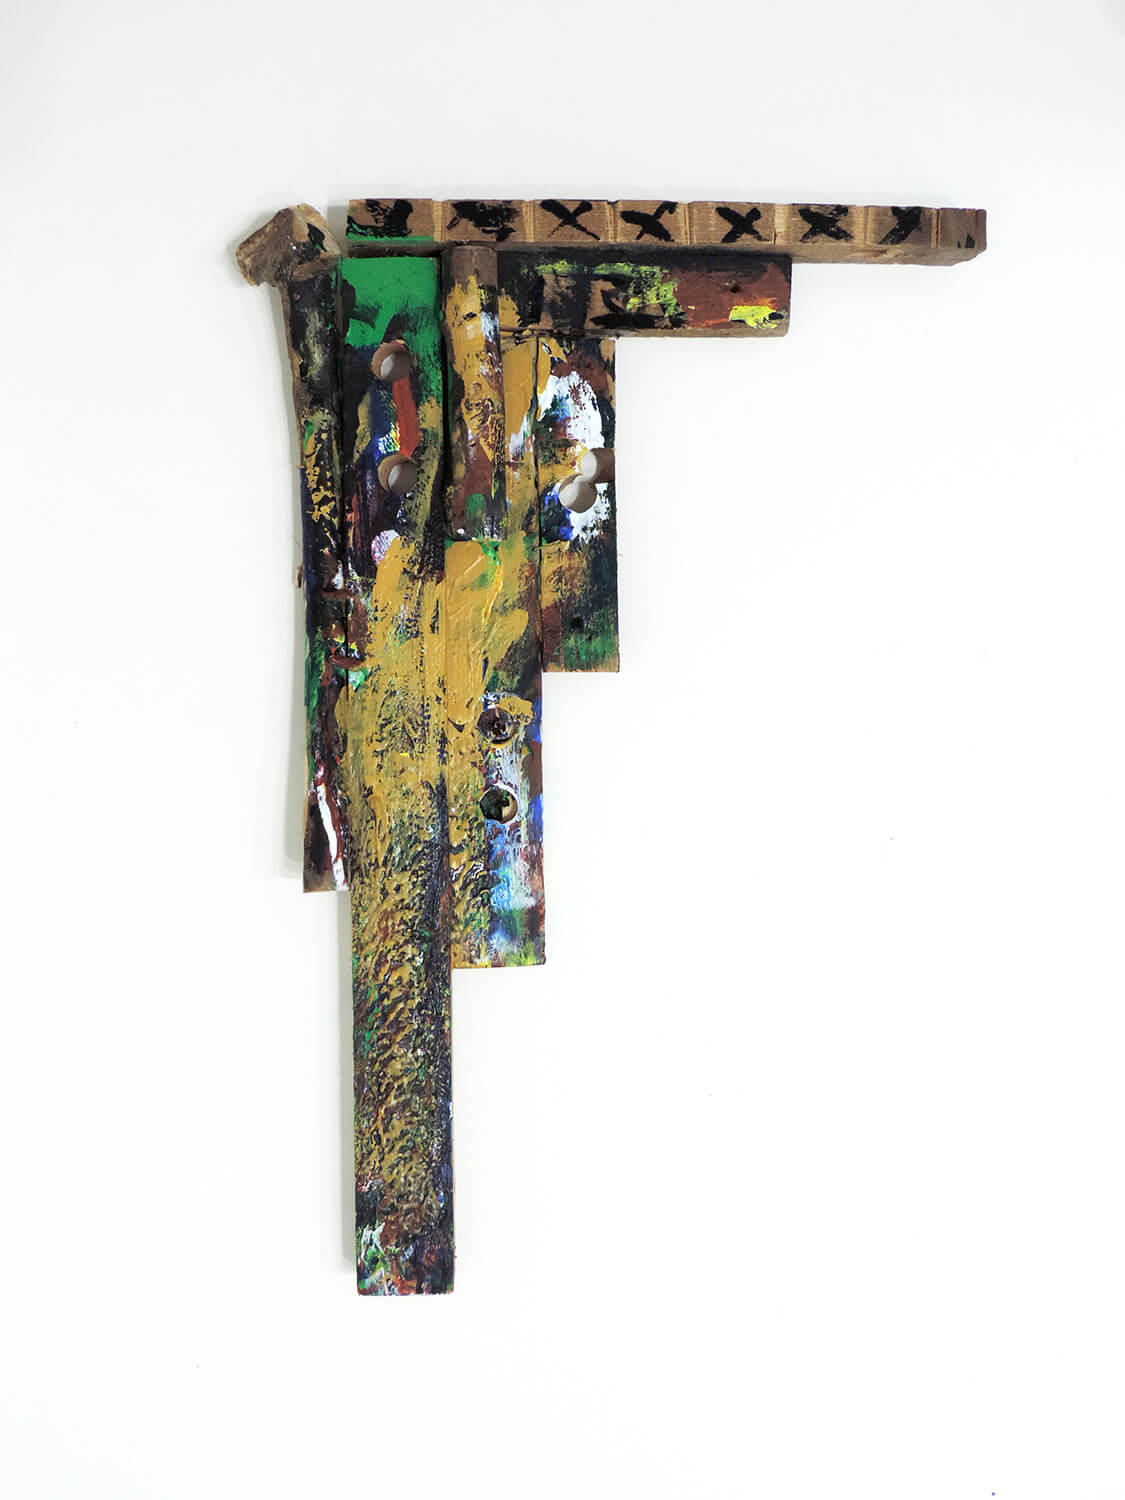 <b><br>Untitled</b><br>Acrylic on wood, stables 50.1 × 35.3 × 5.5 cm 2011